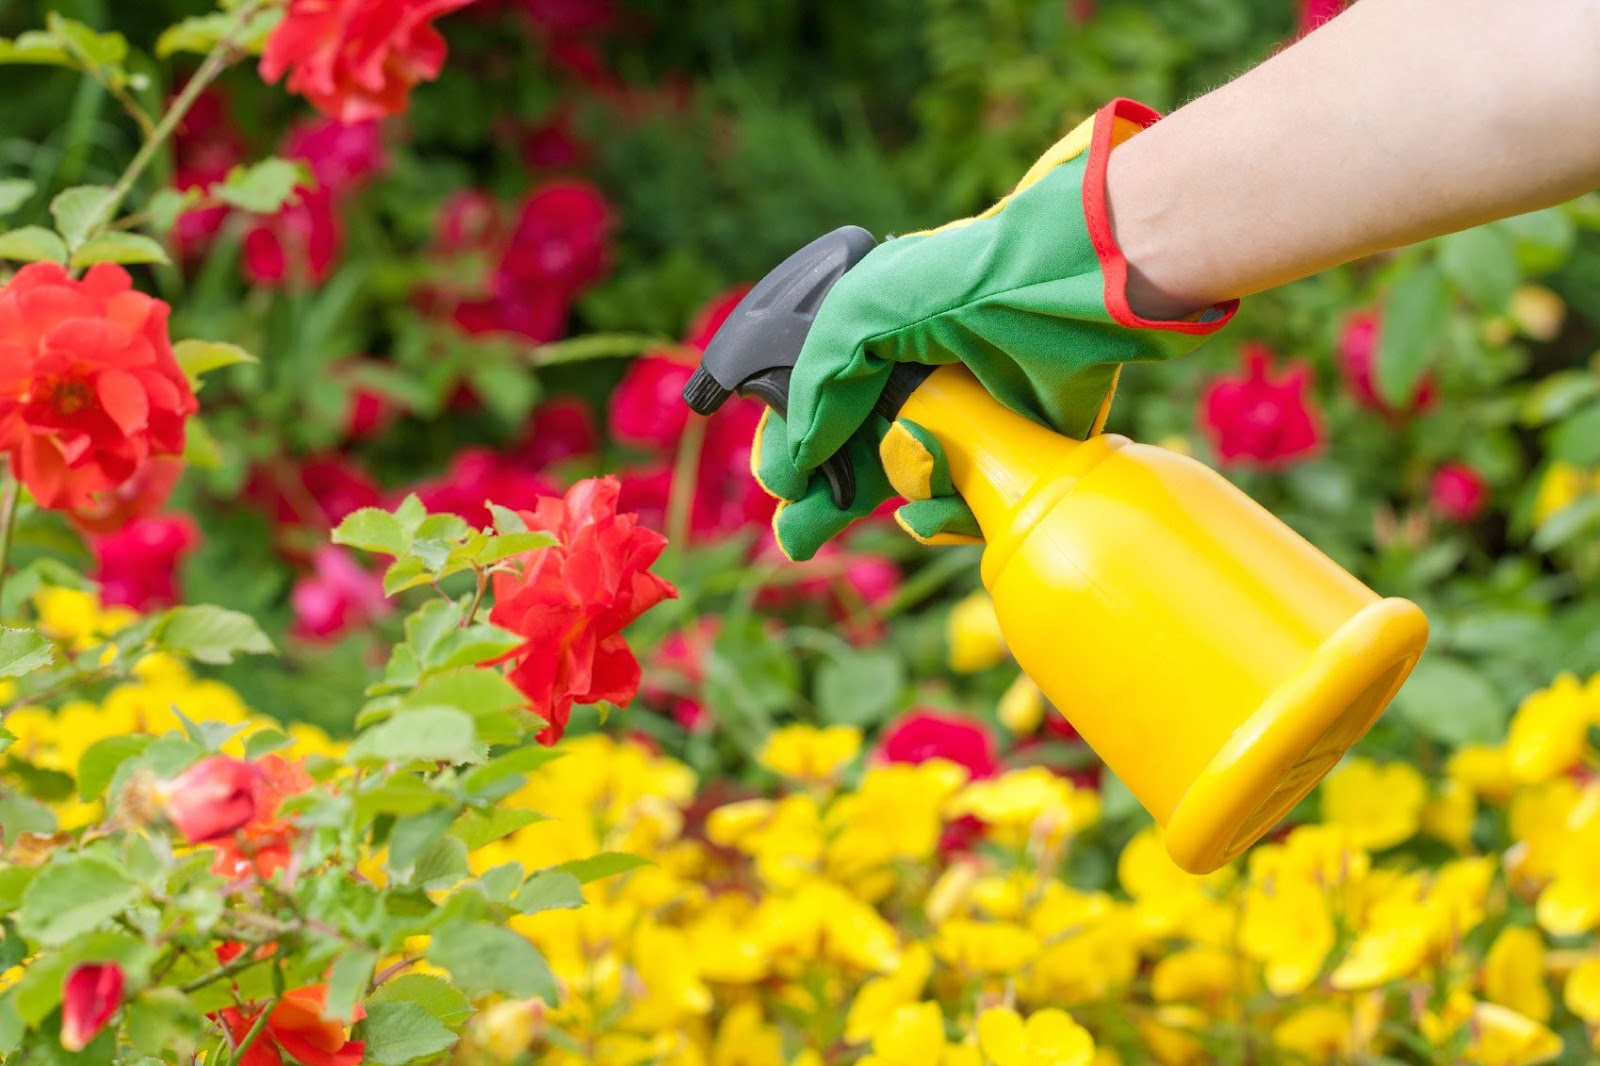 Dangers of Using Chemical Gardening PRoducts